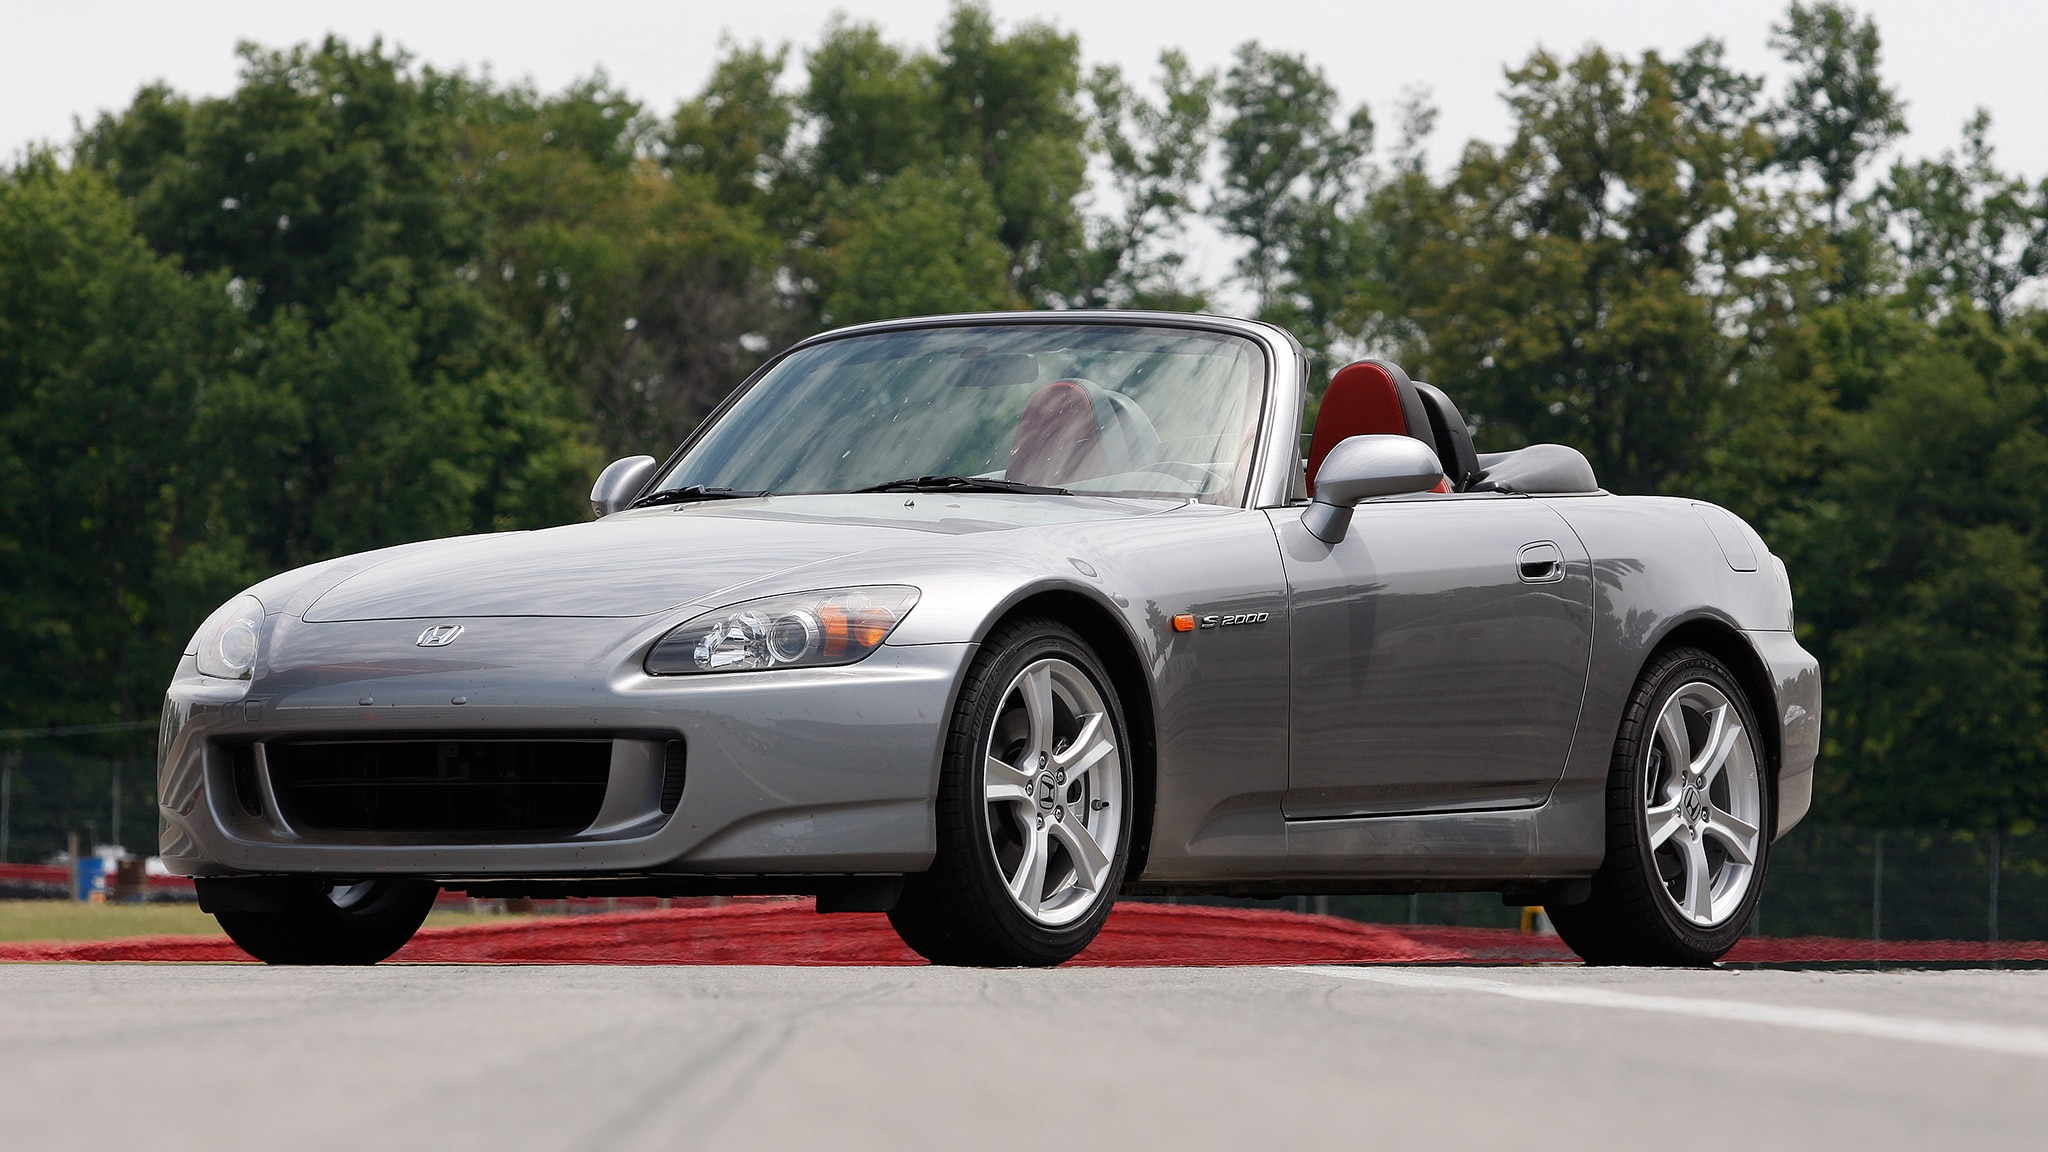 2000–2009 Honda S2000 Buyer's Guide: What To Watch For